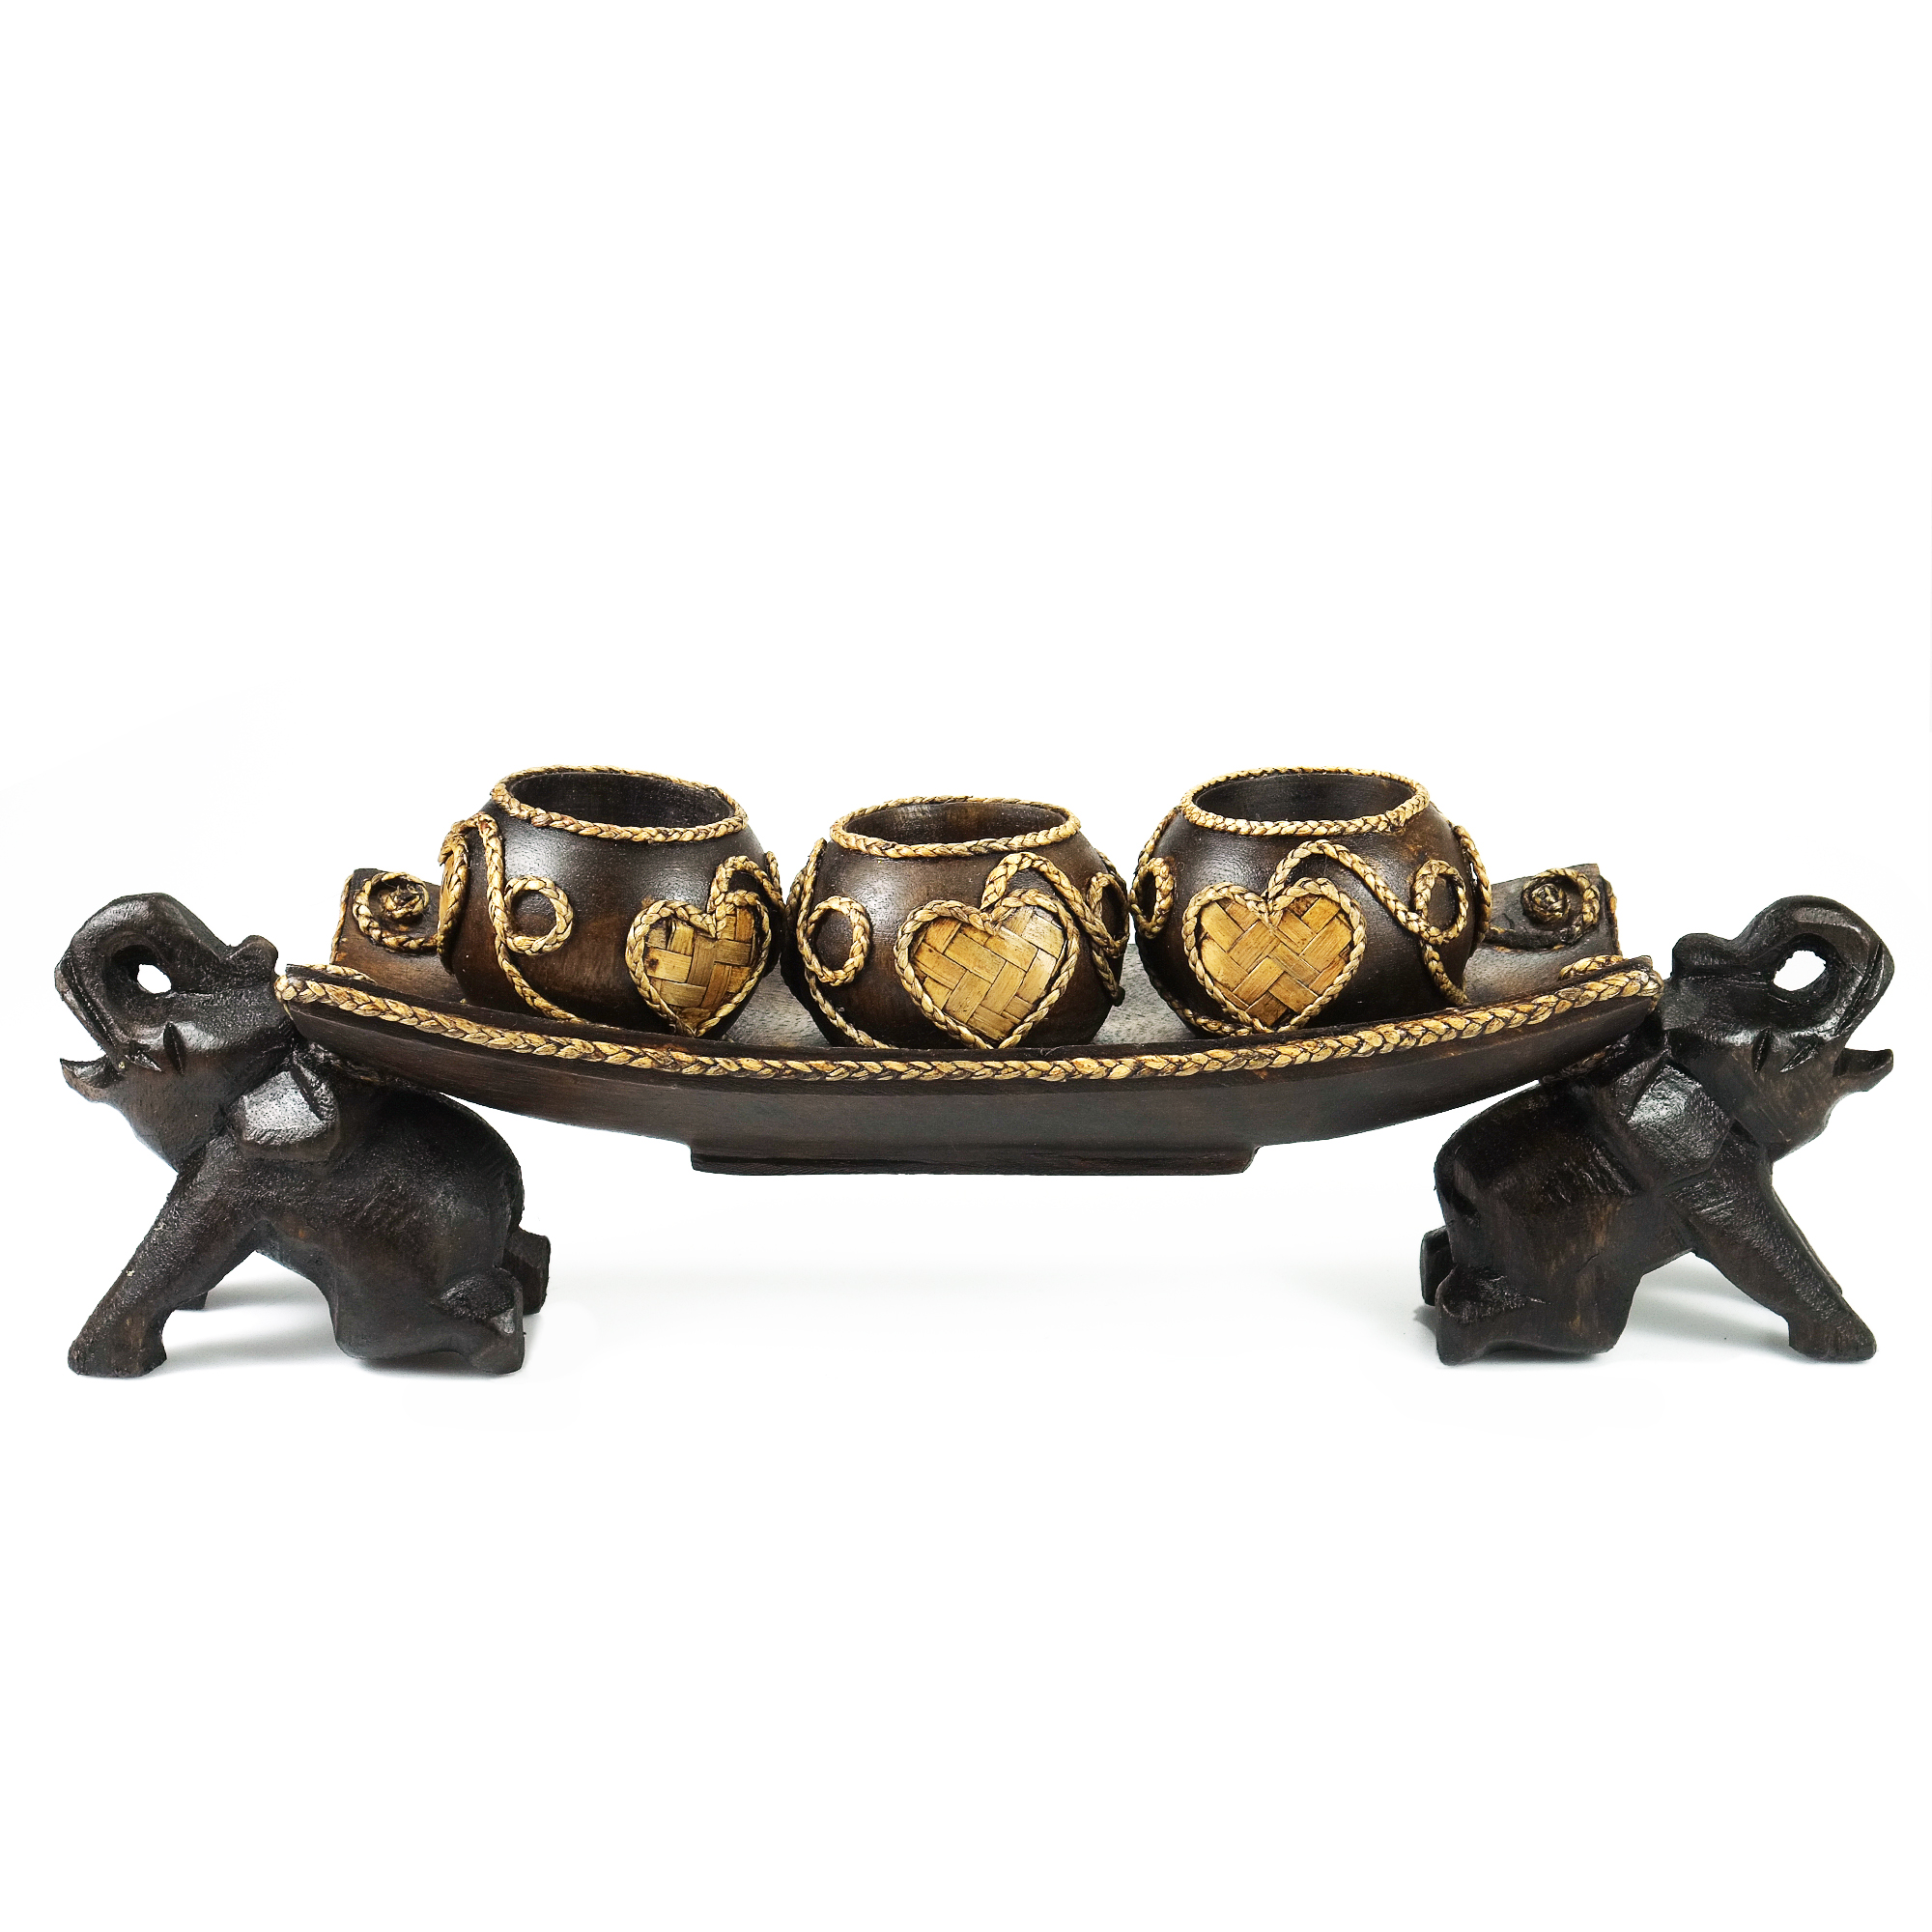 Home Decor Unique Jewelry Hand Crafted Gifts Candles In: Thai Elephant Tray Carved Rain Tree Wooden Candle Holder